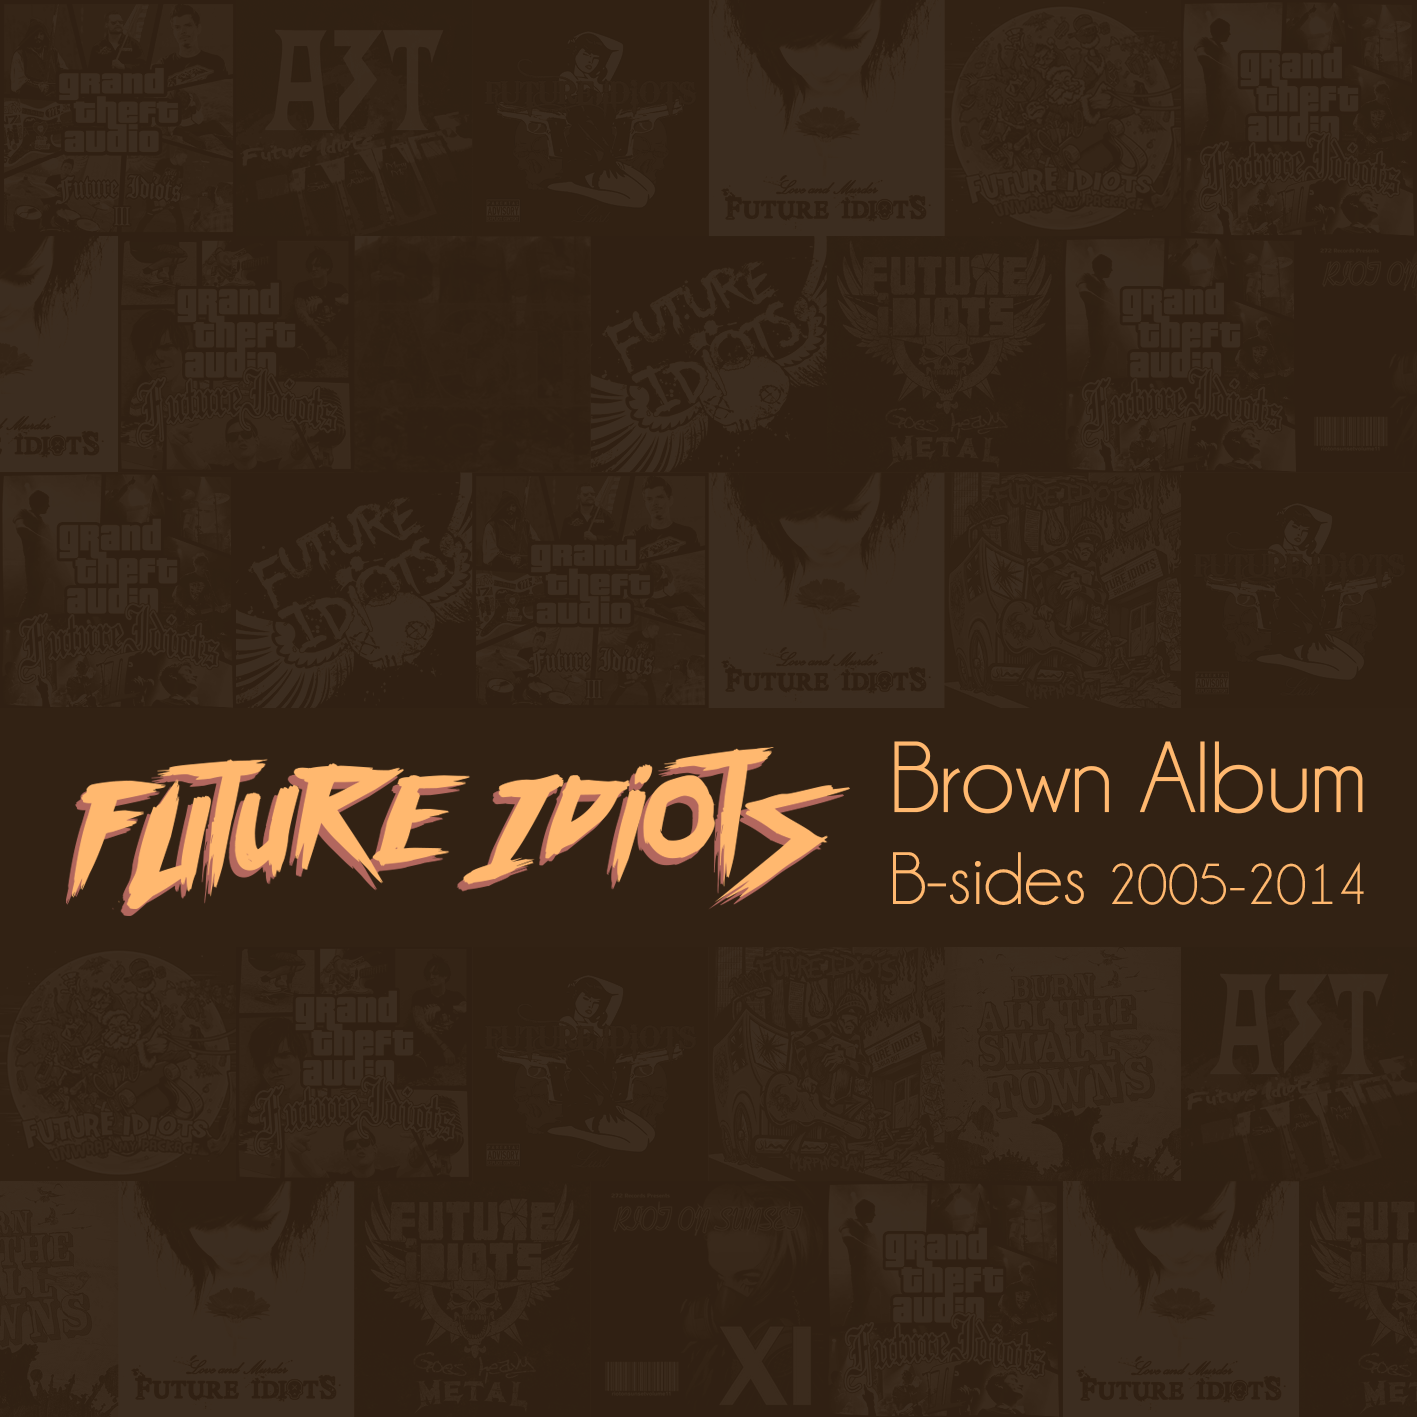 Future Idiots - Brown Album (B-sides 2005-2014) cover art.png